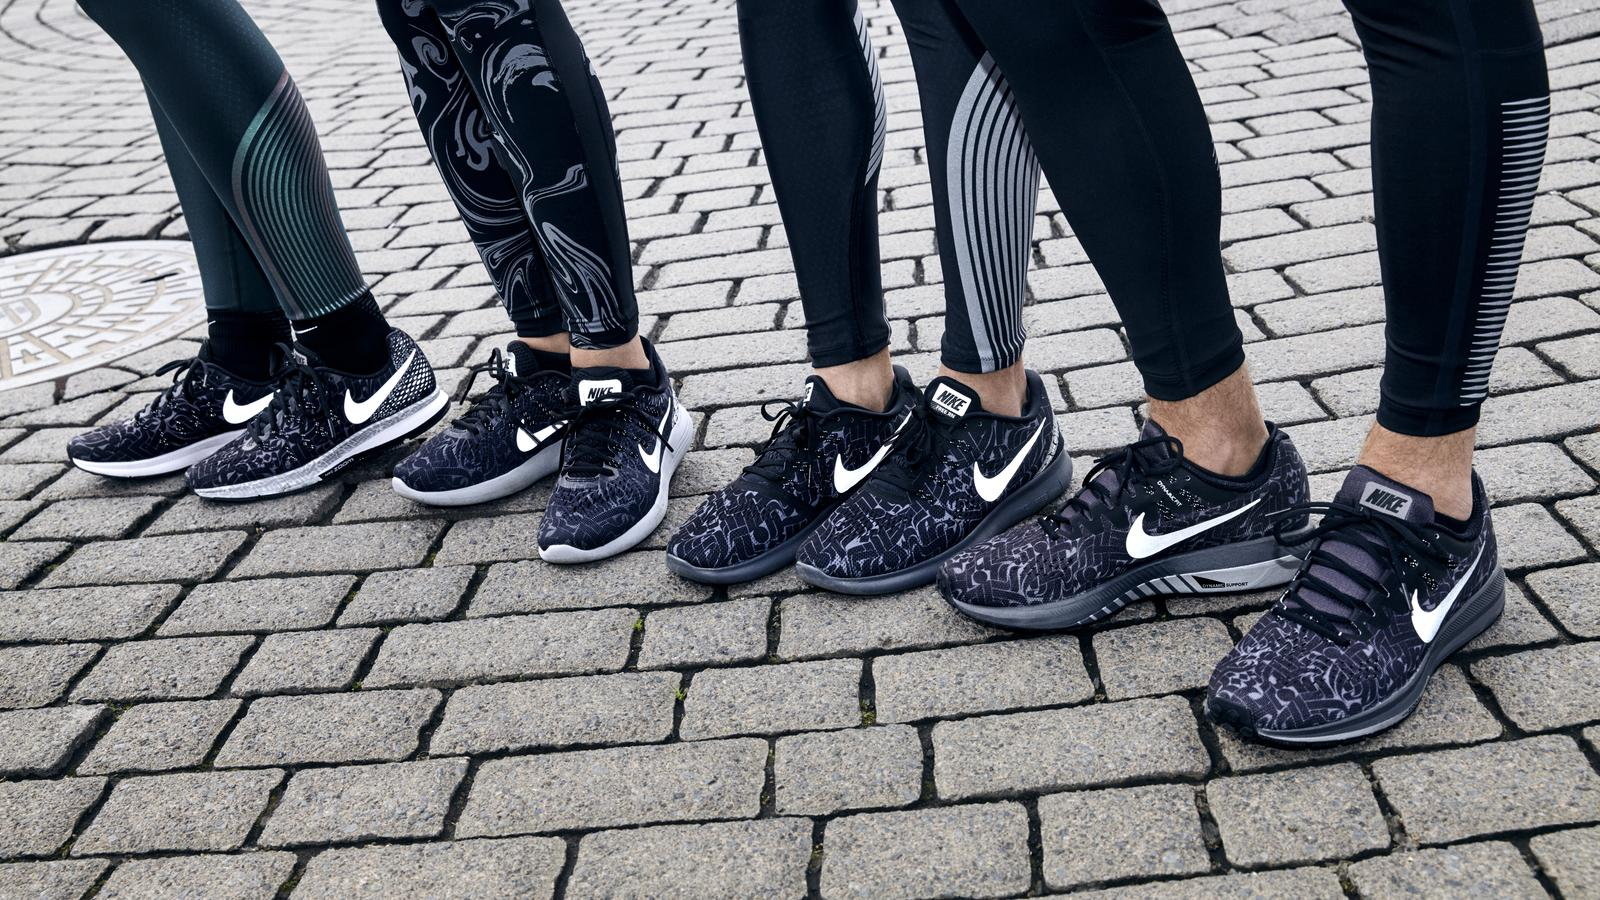 Nike X Rostarr Running Collection Nike News